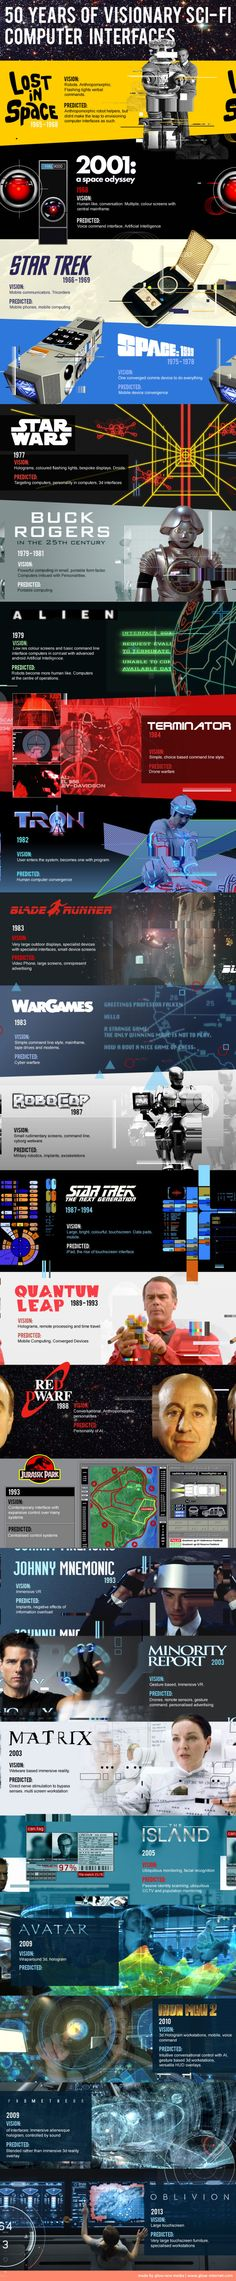 Infographic - 50 years of visionary sci-fi computer interface design - AWESOME!